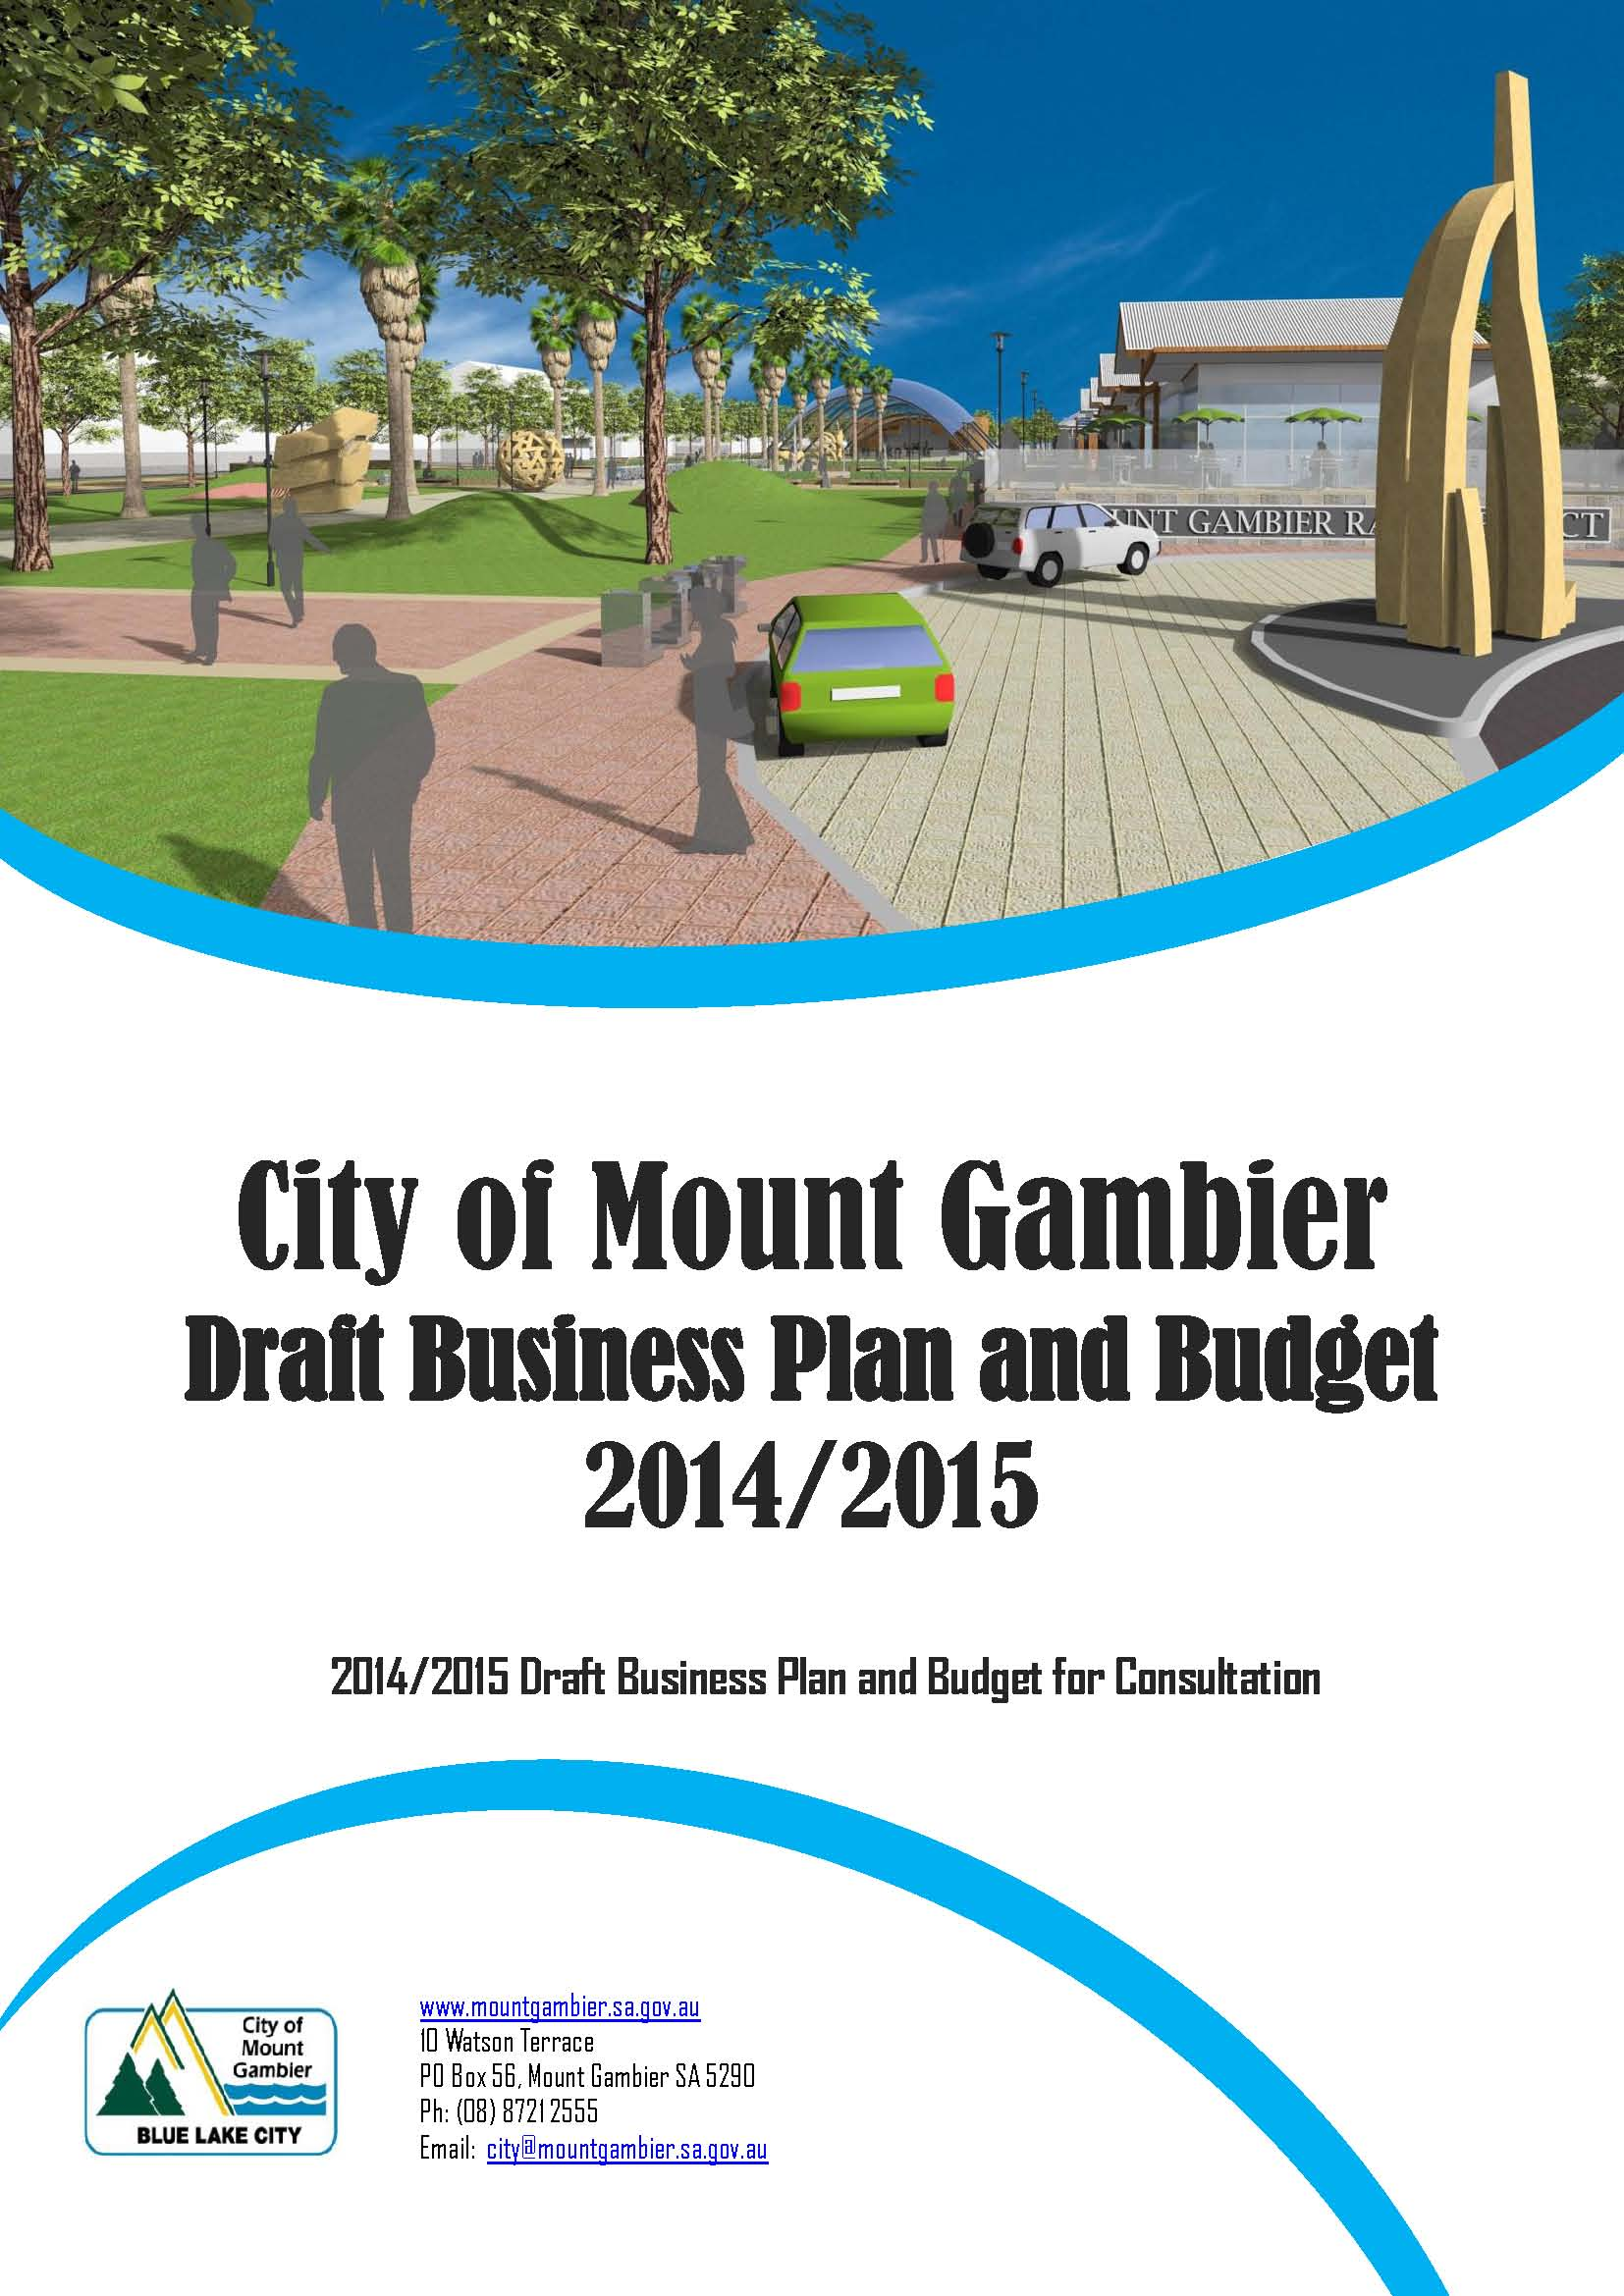 Draft business plan and budget for consultation cover 2014   2015